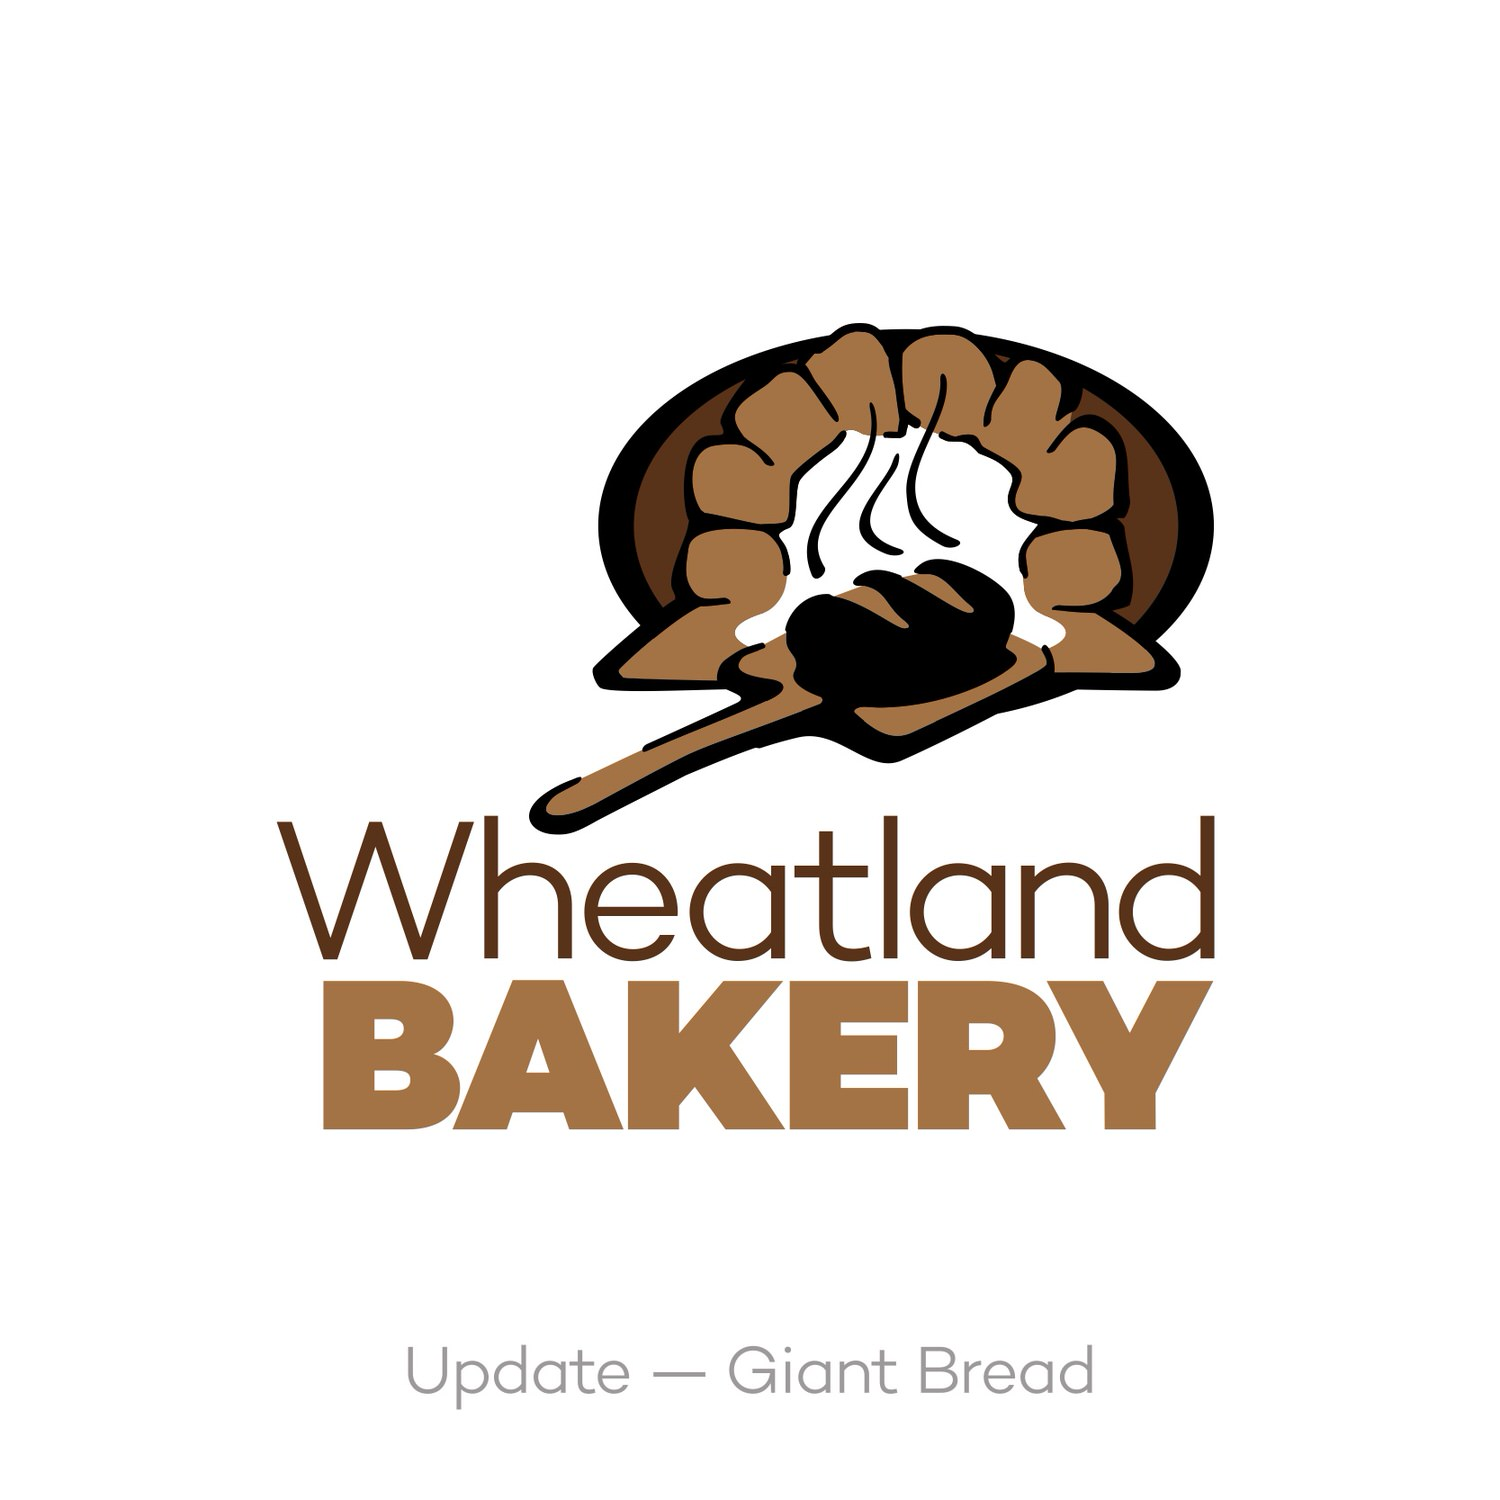 Wheatland-Logo-Options-11.jpg